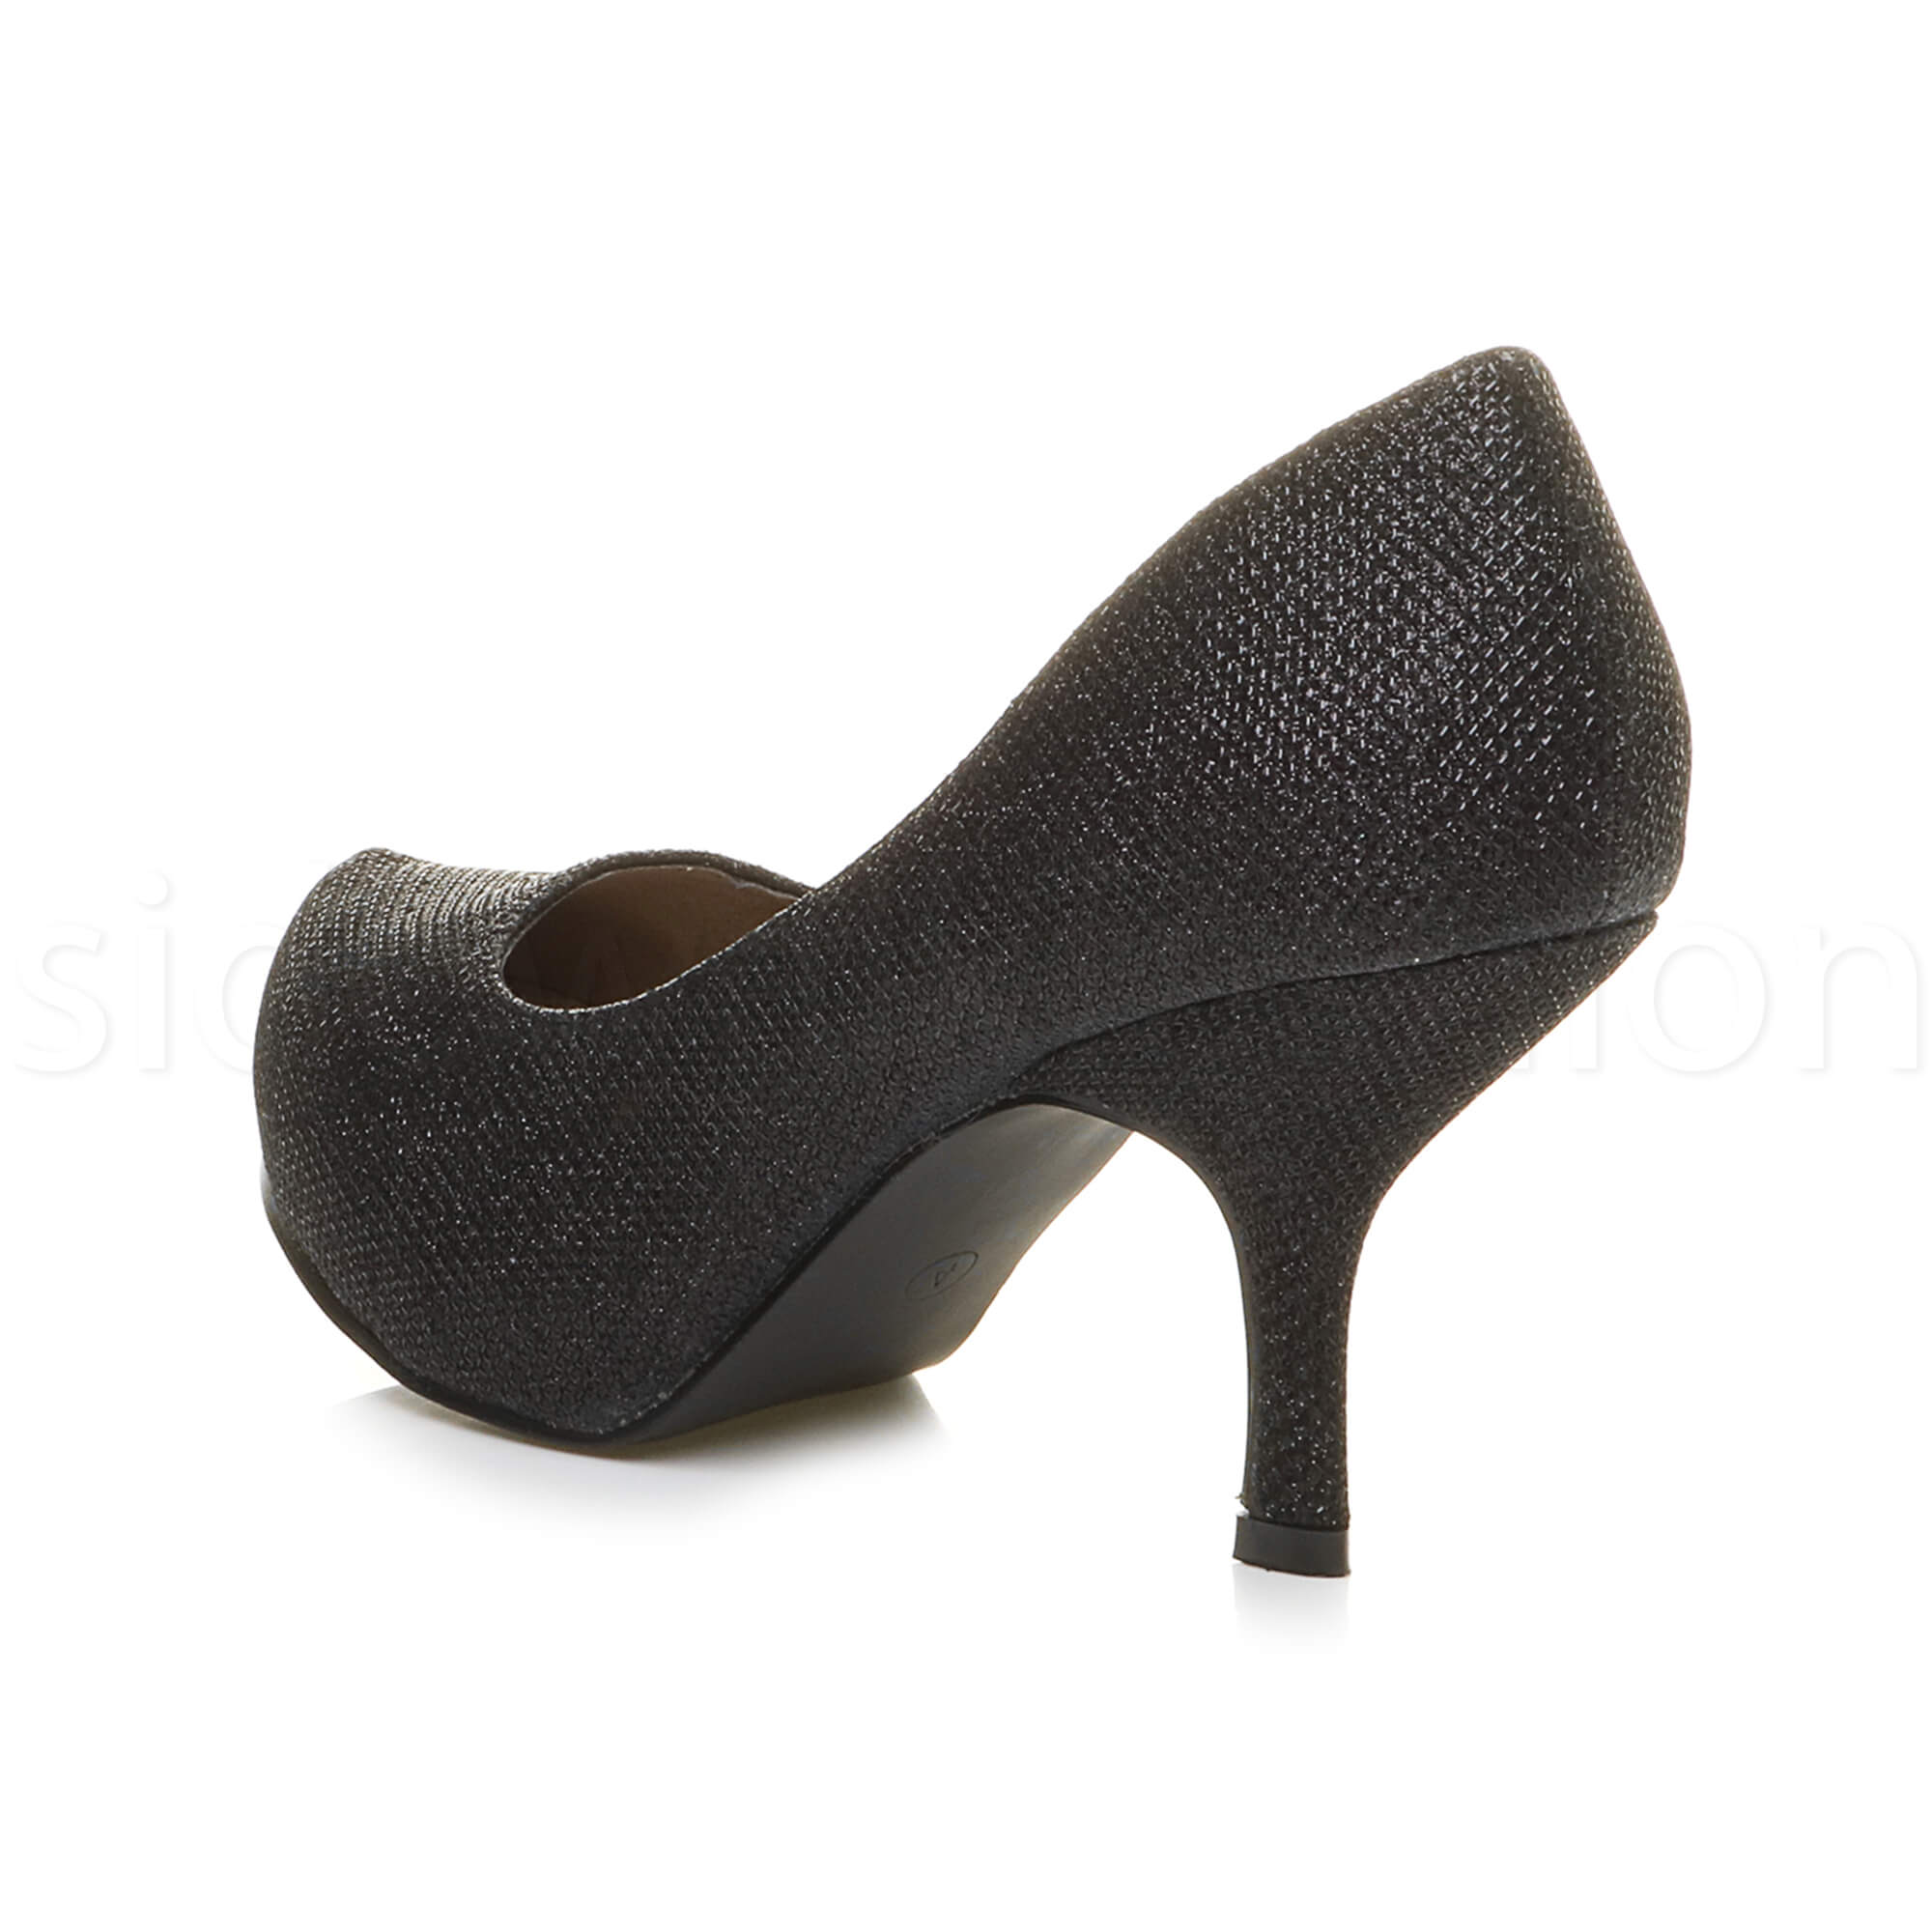 Womens-ladies-low-mid-heel-concealed-platform-work-party-court-shoes-pumps-size thumbnail 11